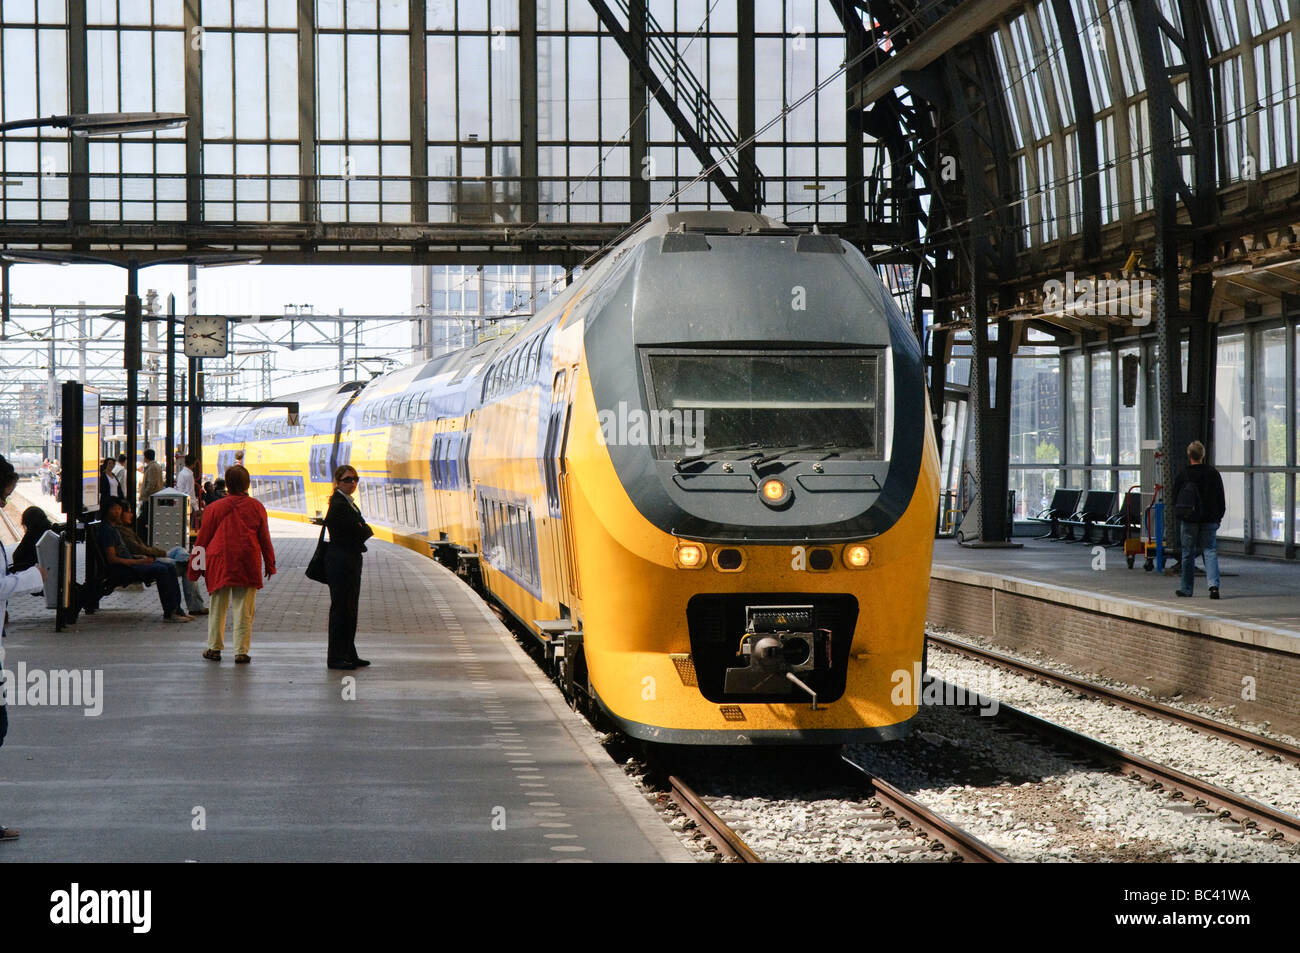 Train at platform 14a Amsterdam Central Station - Stock Image